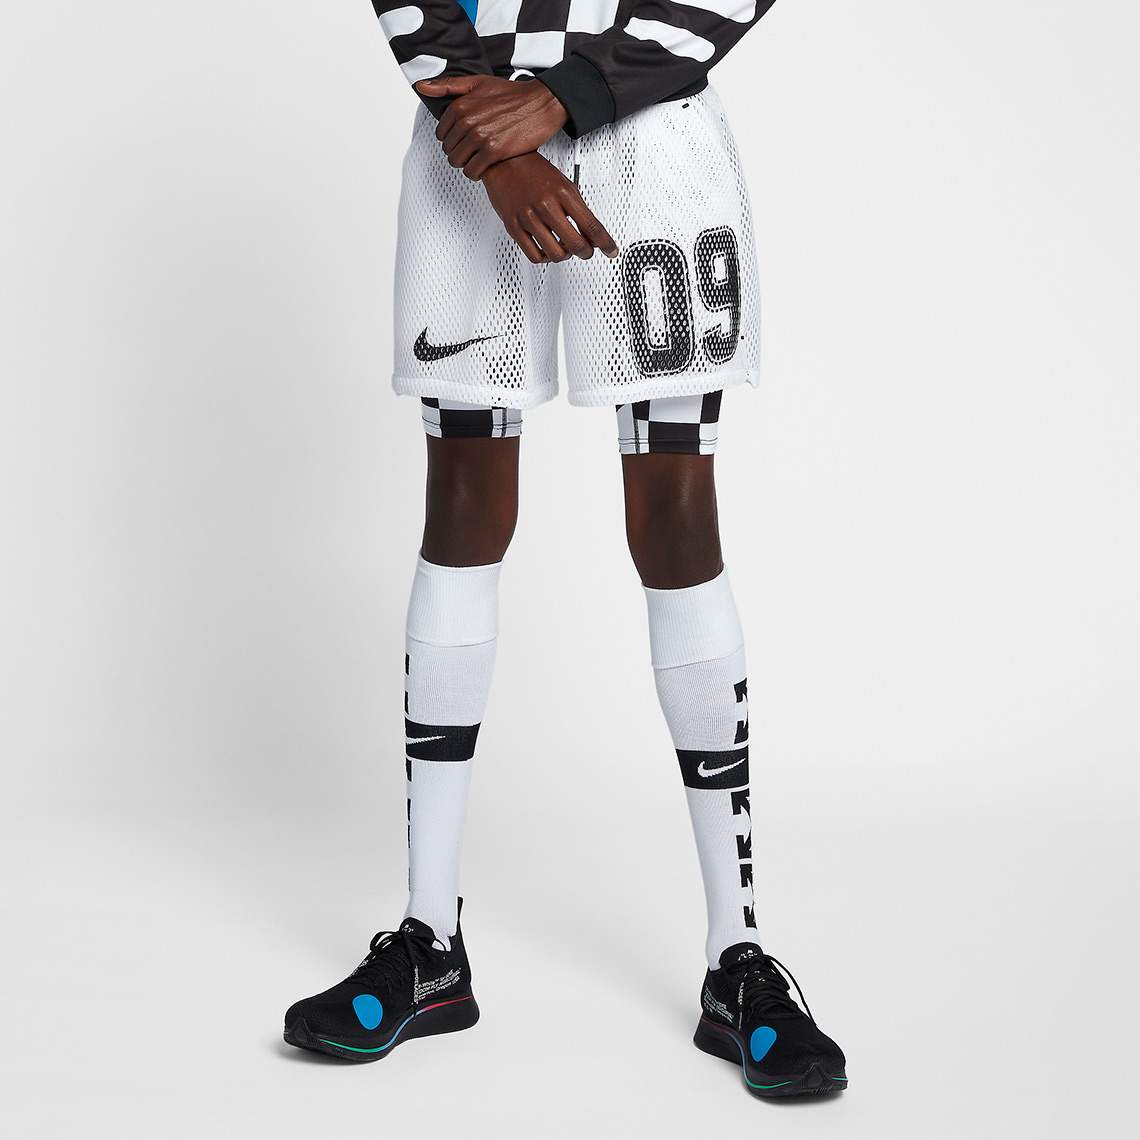 OFF WHITE Nike Football Apparel Release Info | SneakerNews.com